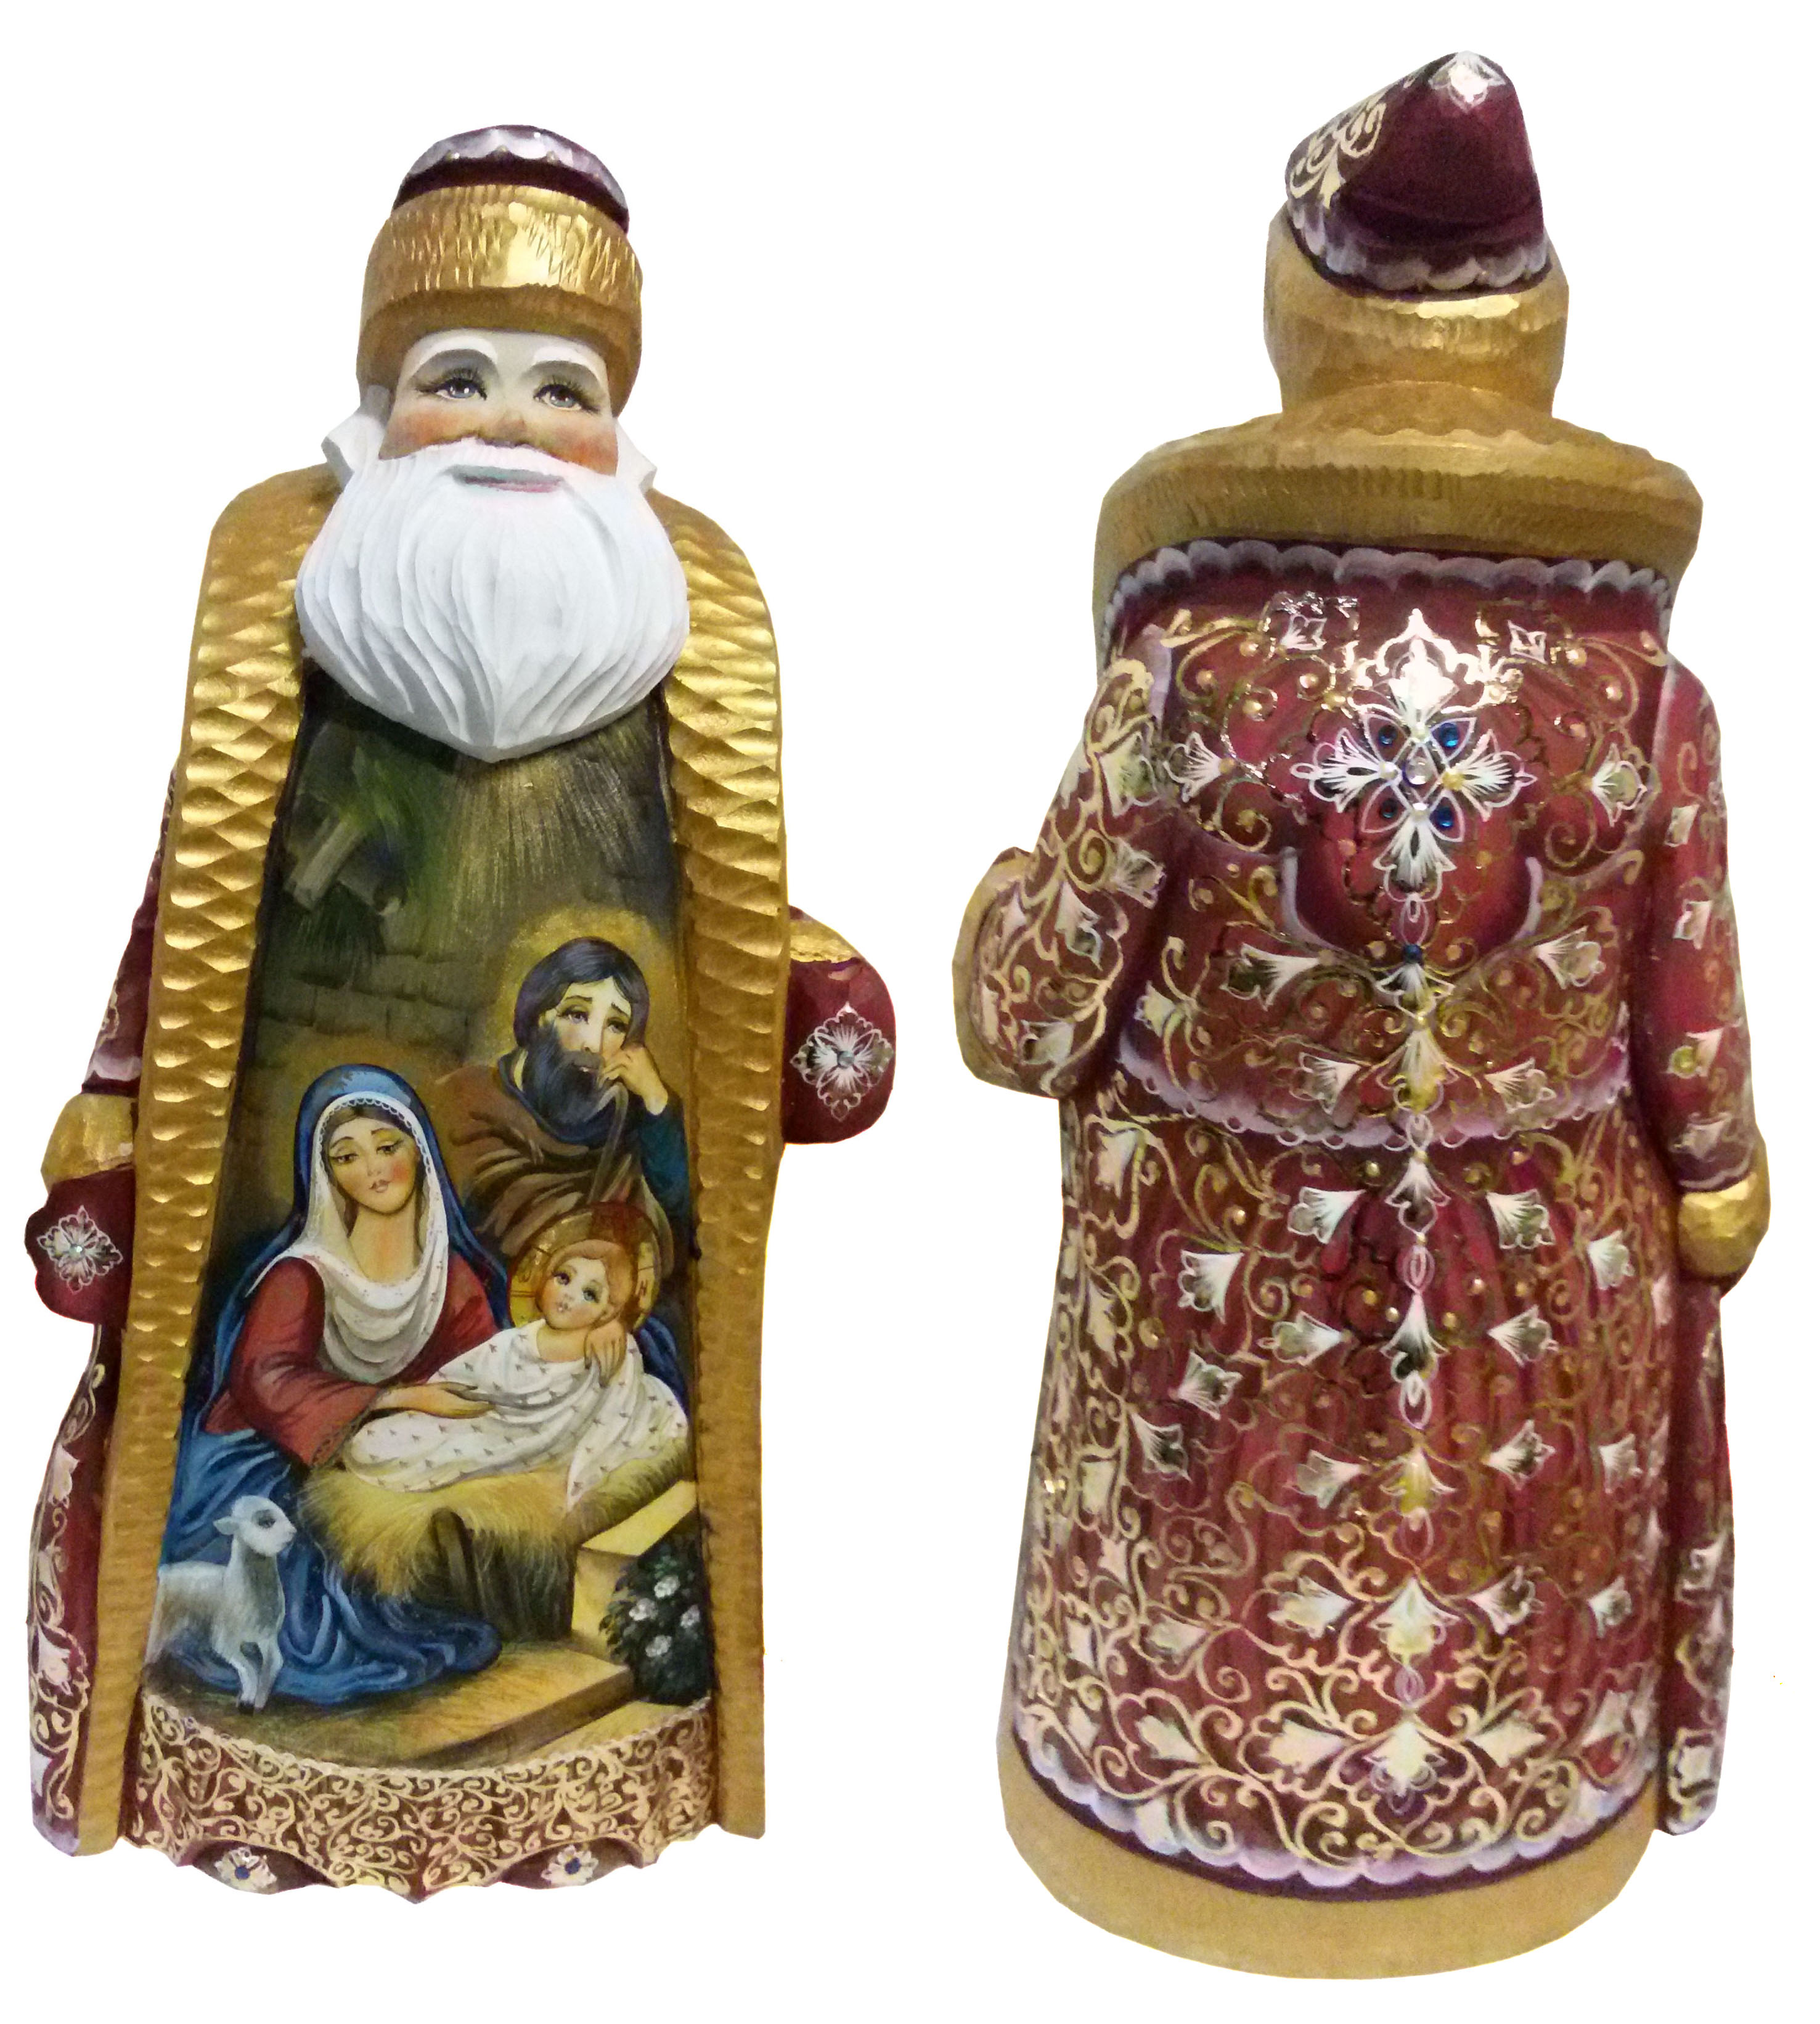 CK_ish65001 Traditionally hand carved of wood from linden tree and hand painted Santa Claus (35-36 cm)